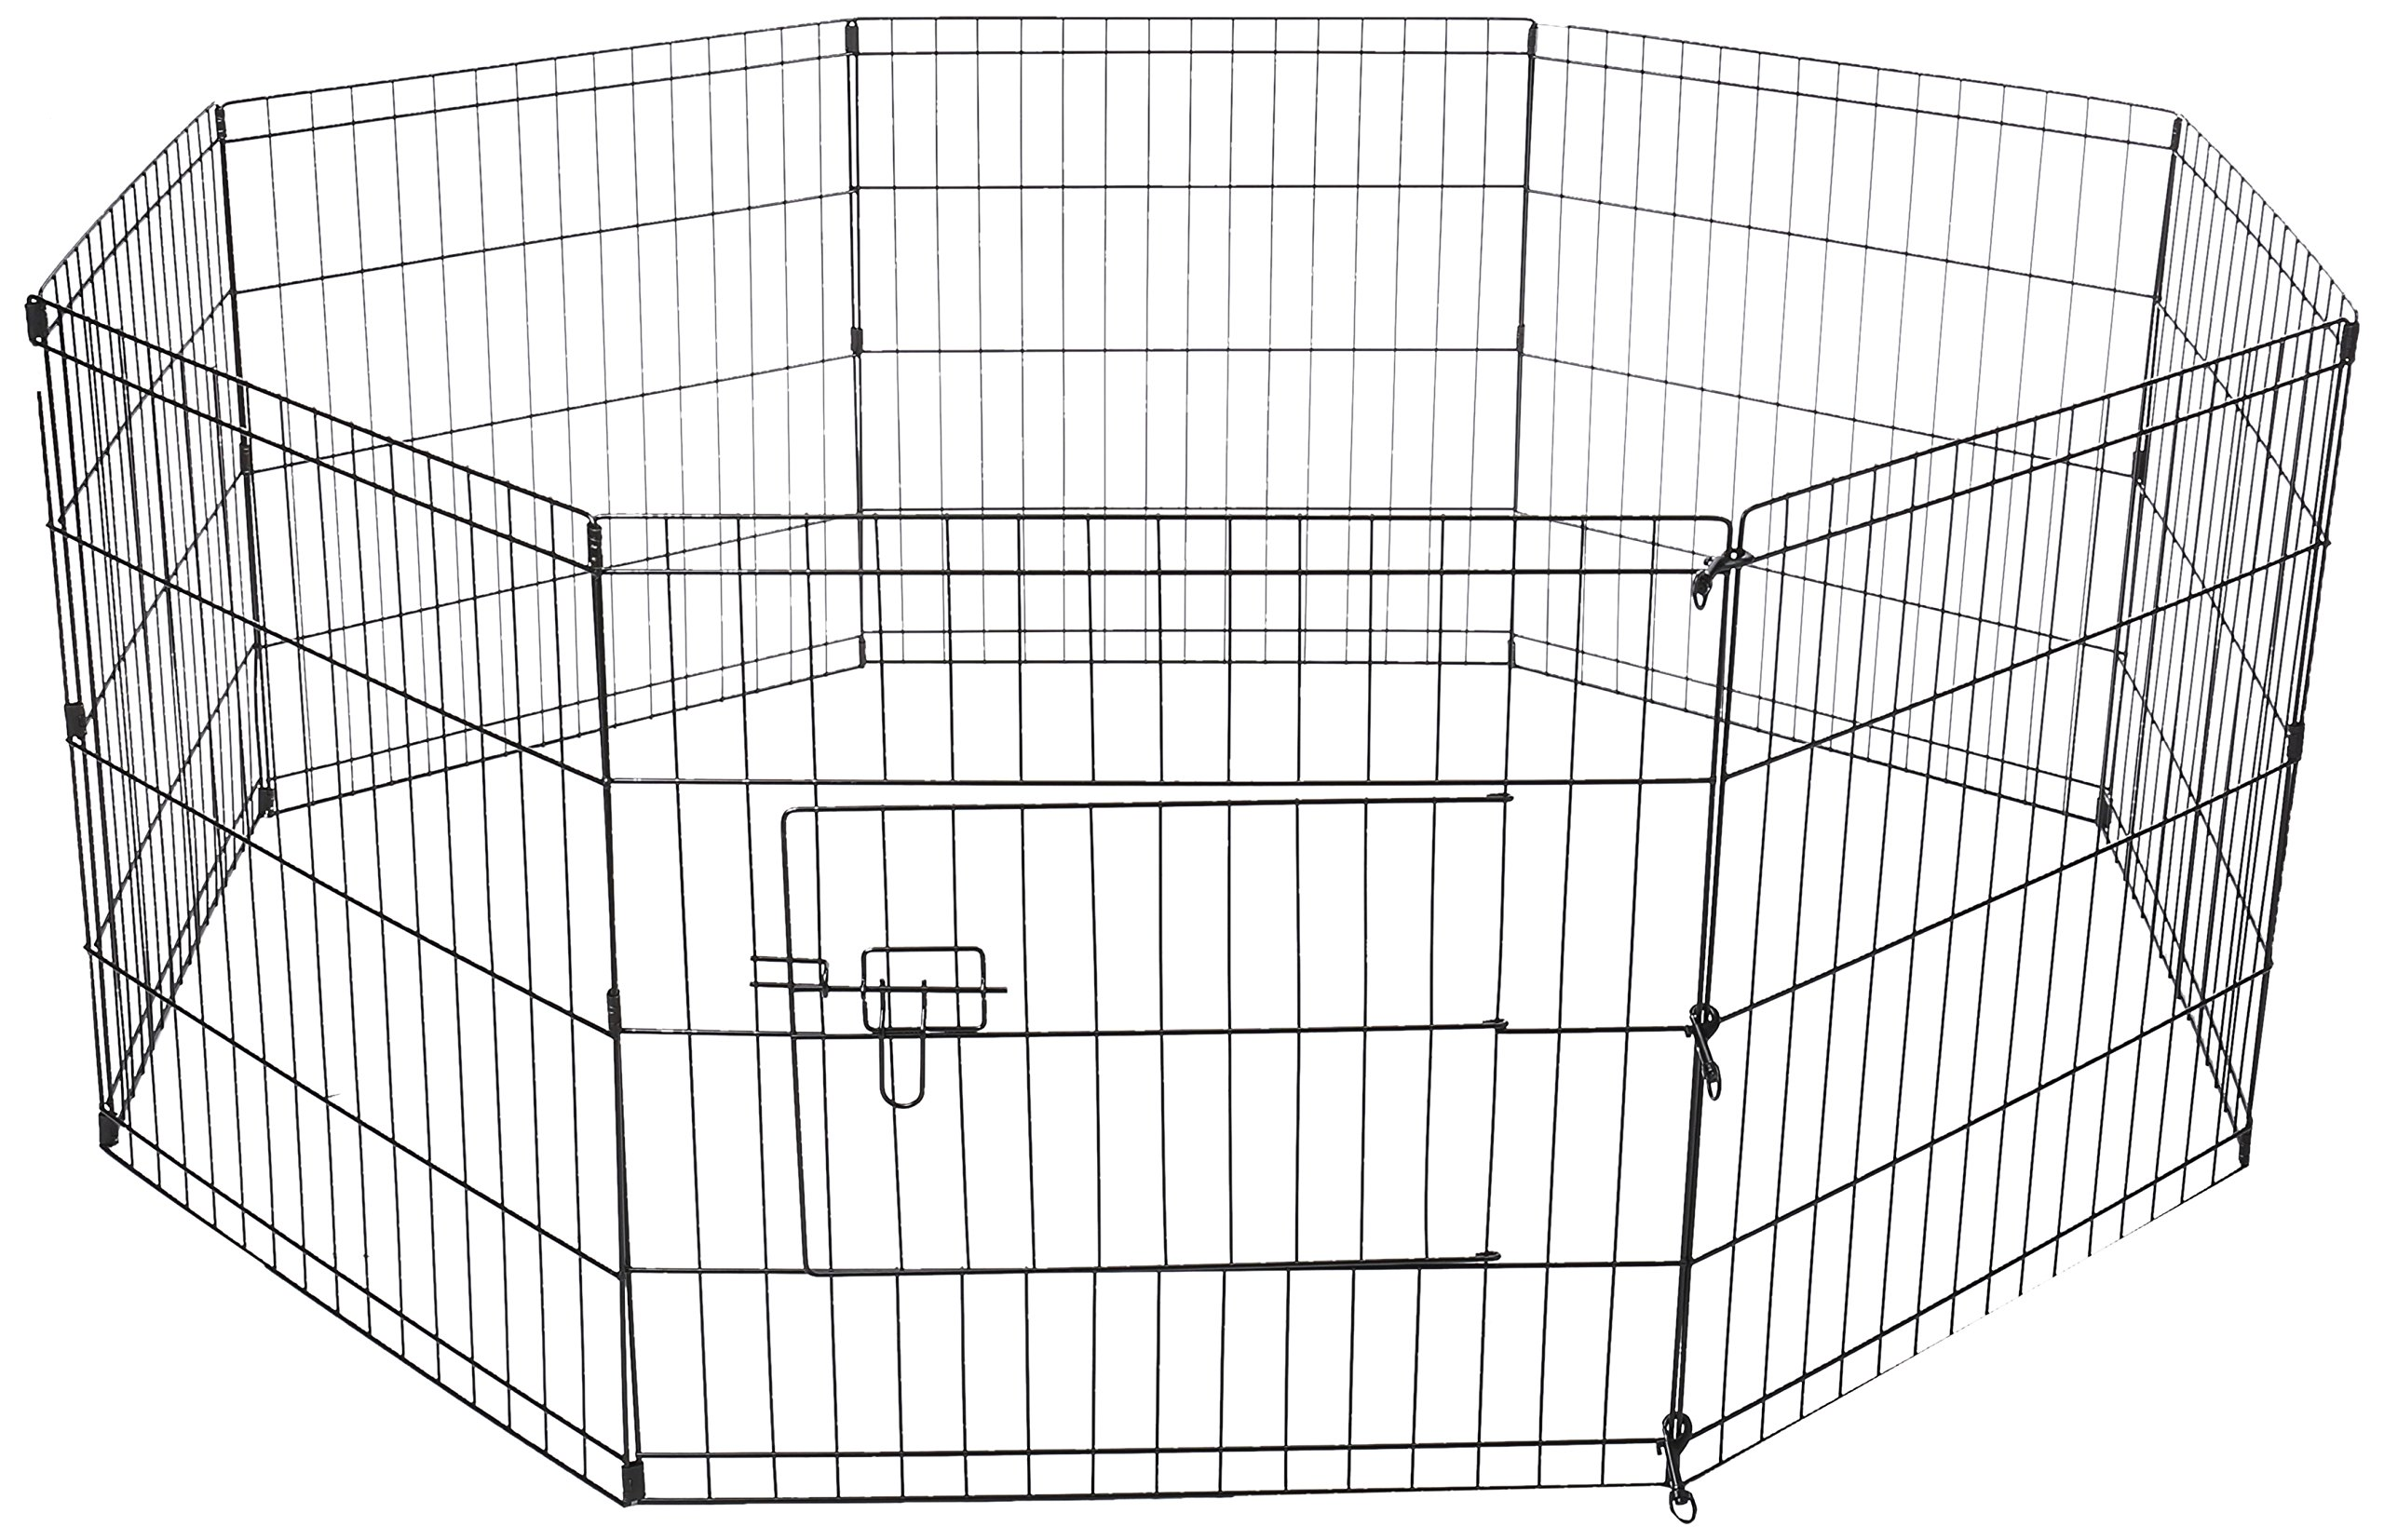 Oxgord Dog Animal Playpen Large Metal Wire Folding Exercise Yard Fence 8 Pane